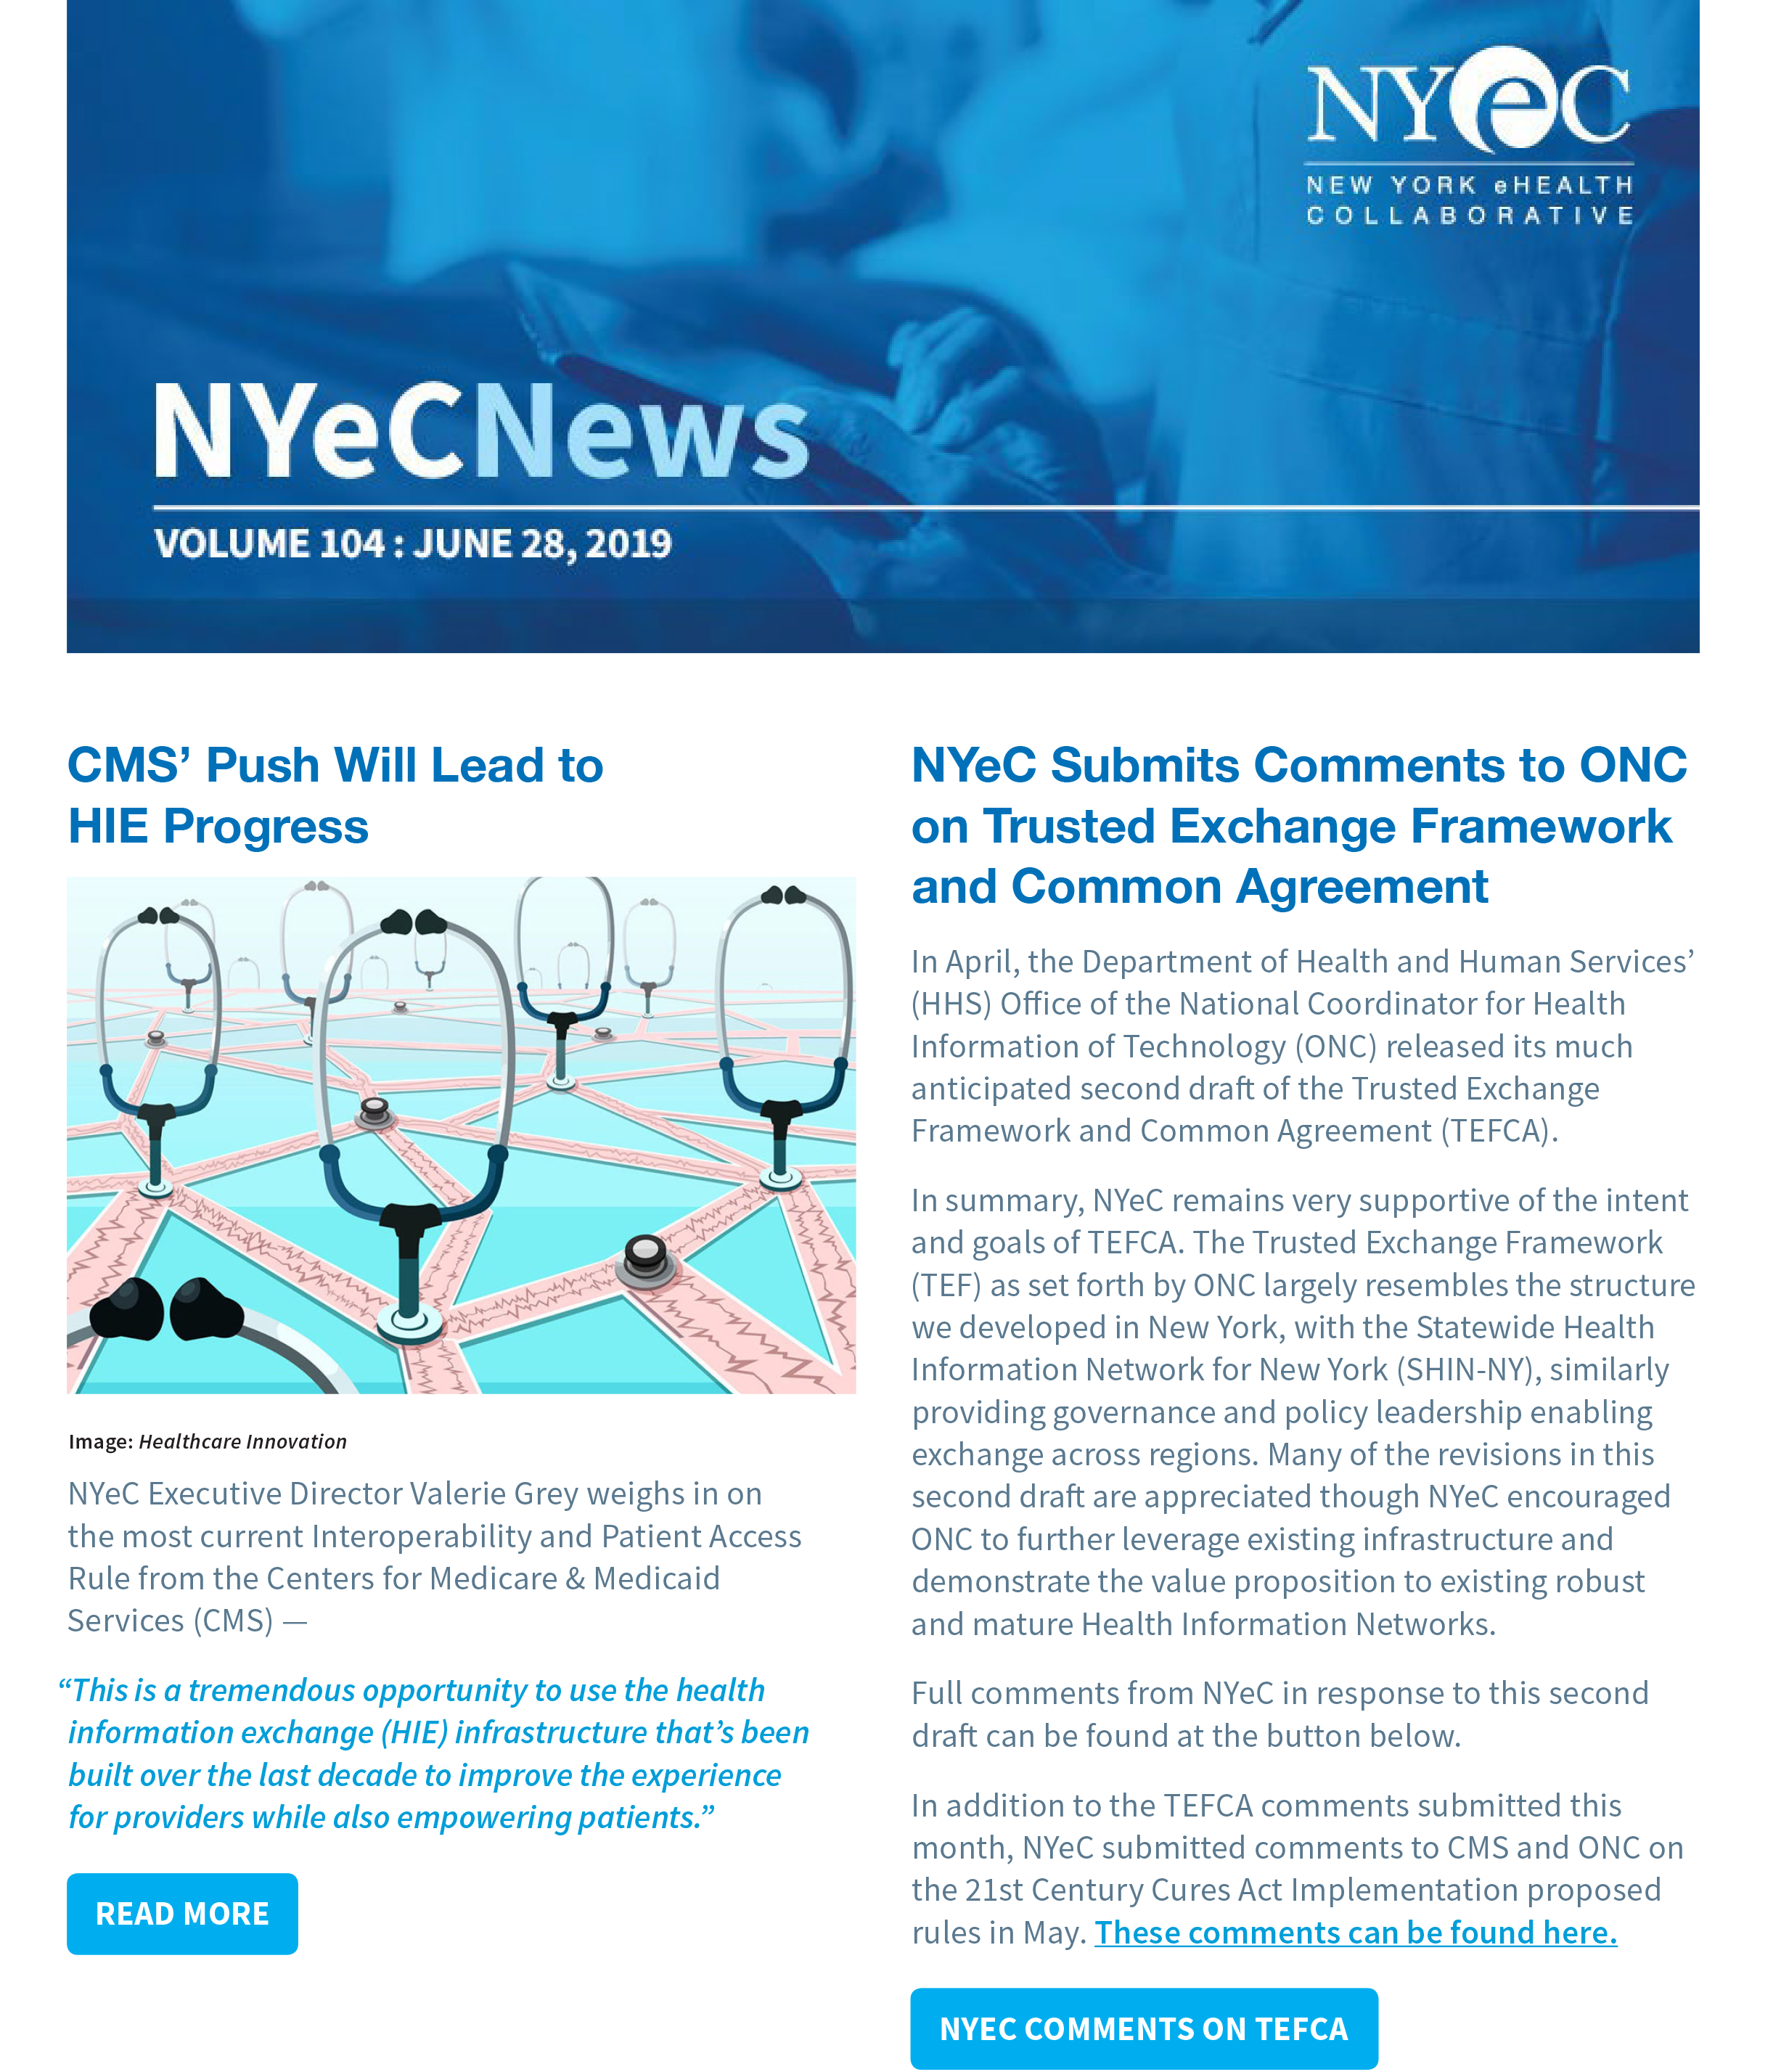 Cover of the 104th Volume of NYeC News - June 2019